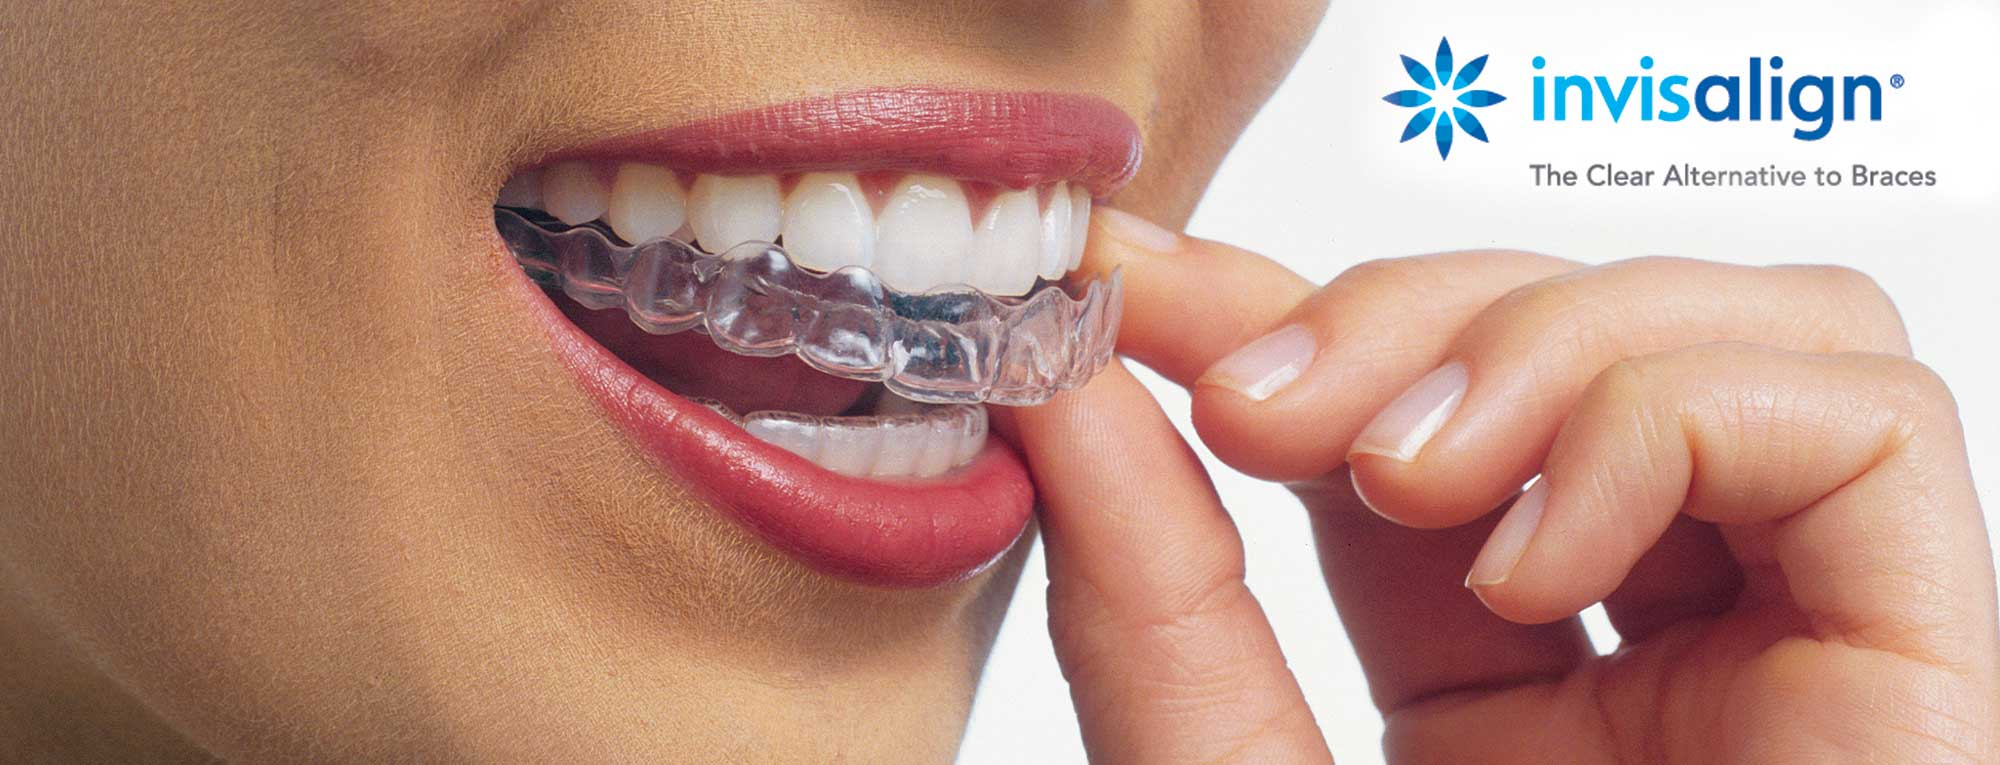 Invisalign Modern Smiles Dentistry North Hollywood